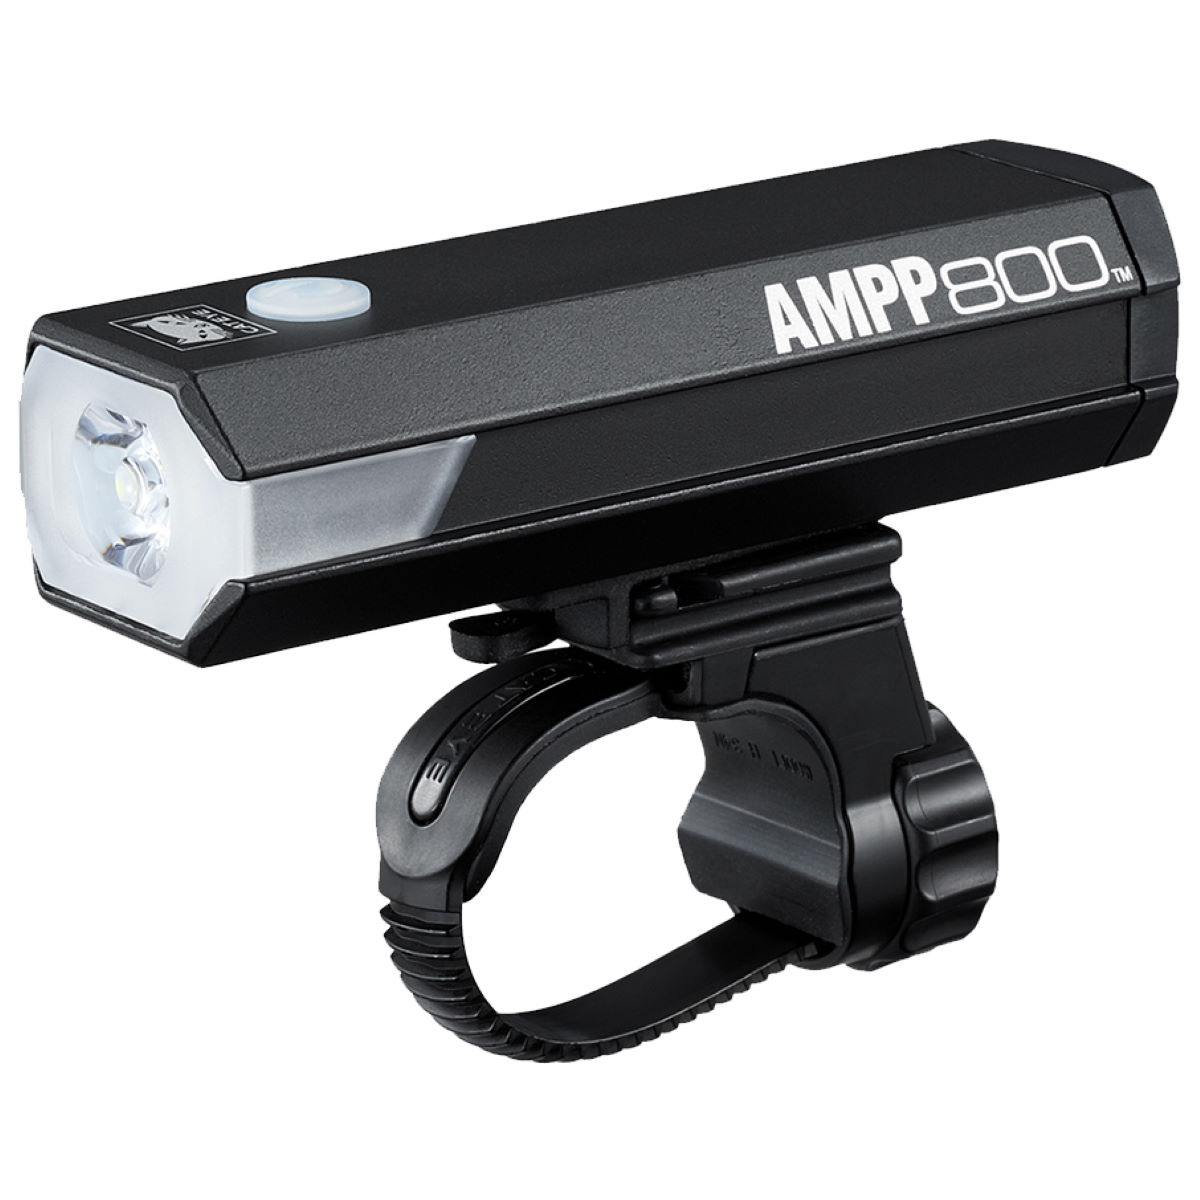 Cateye Cateye Ampp 800 Front Light   Front Lights